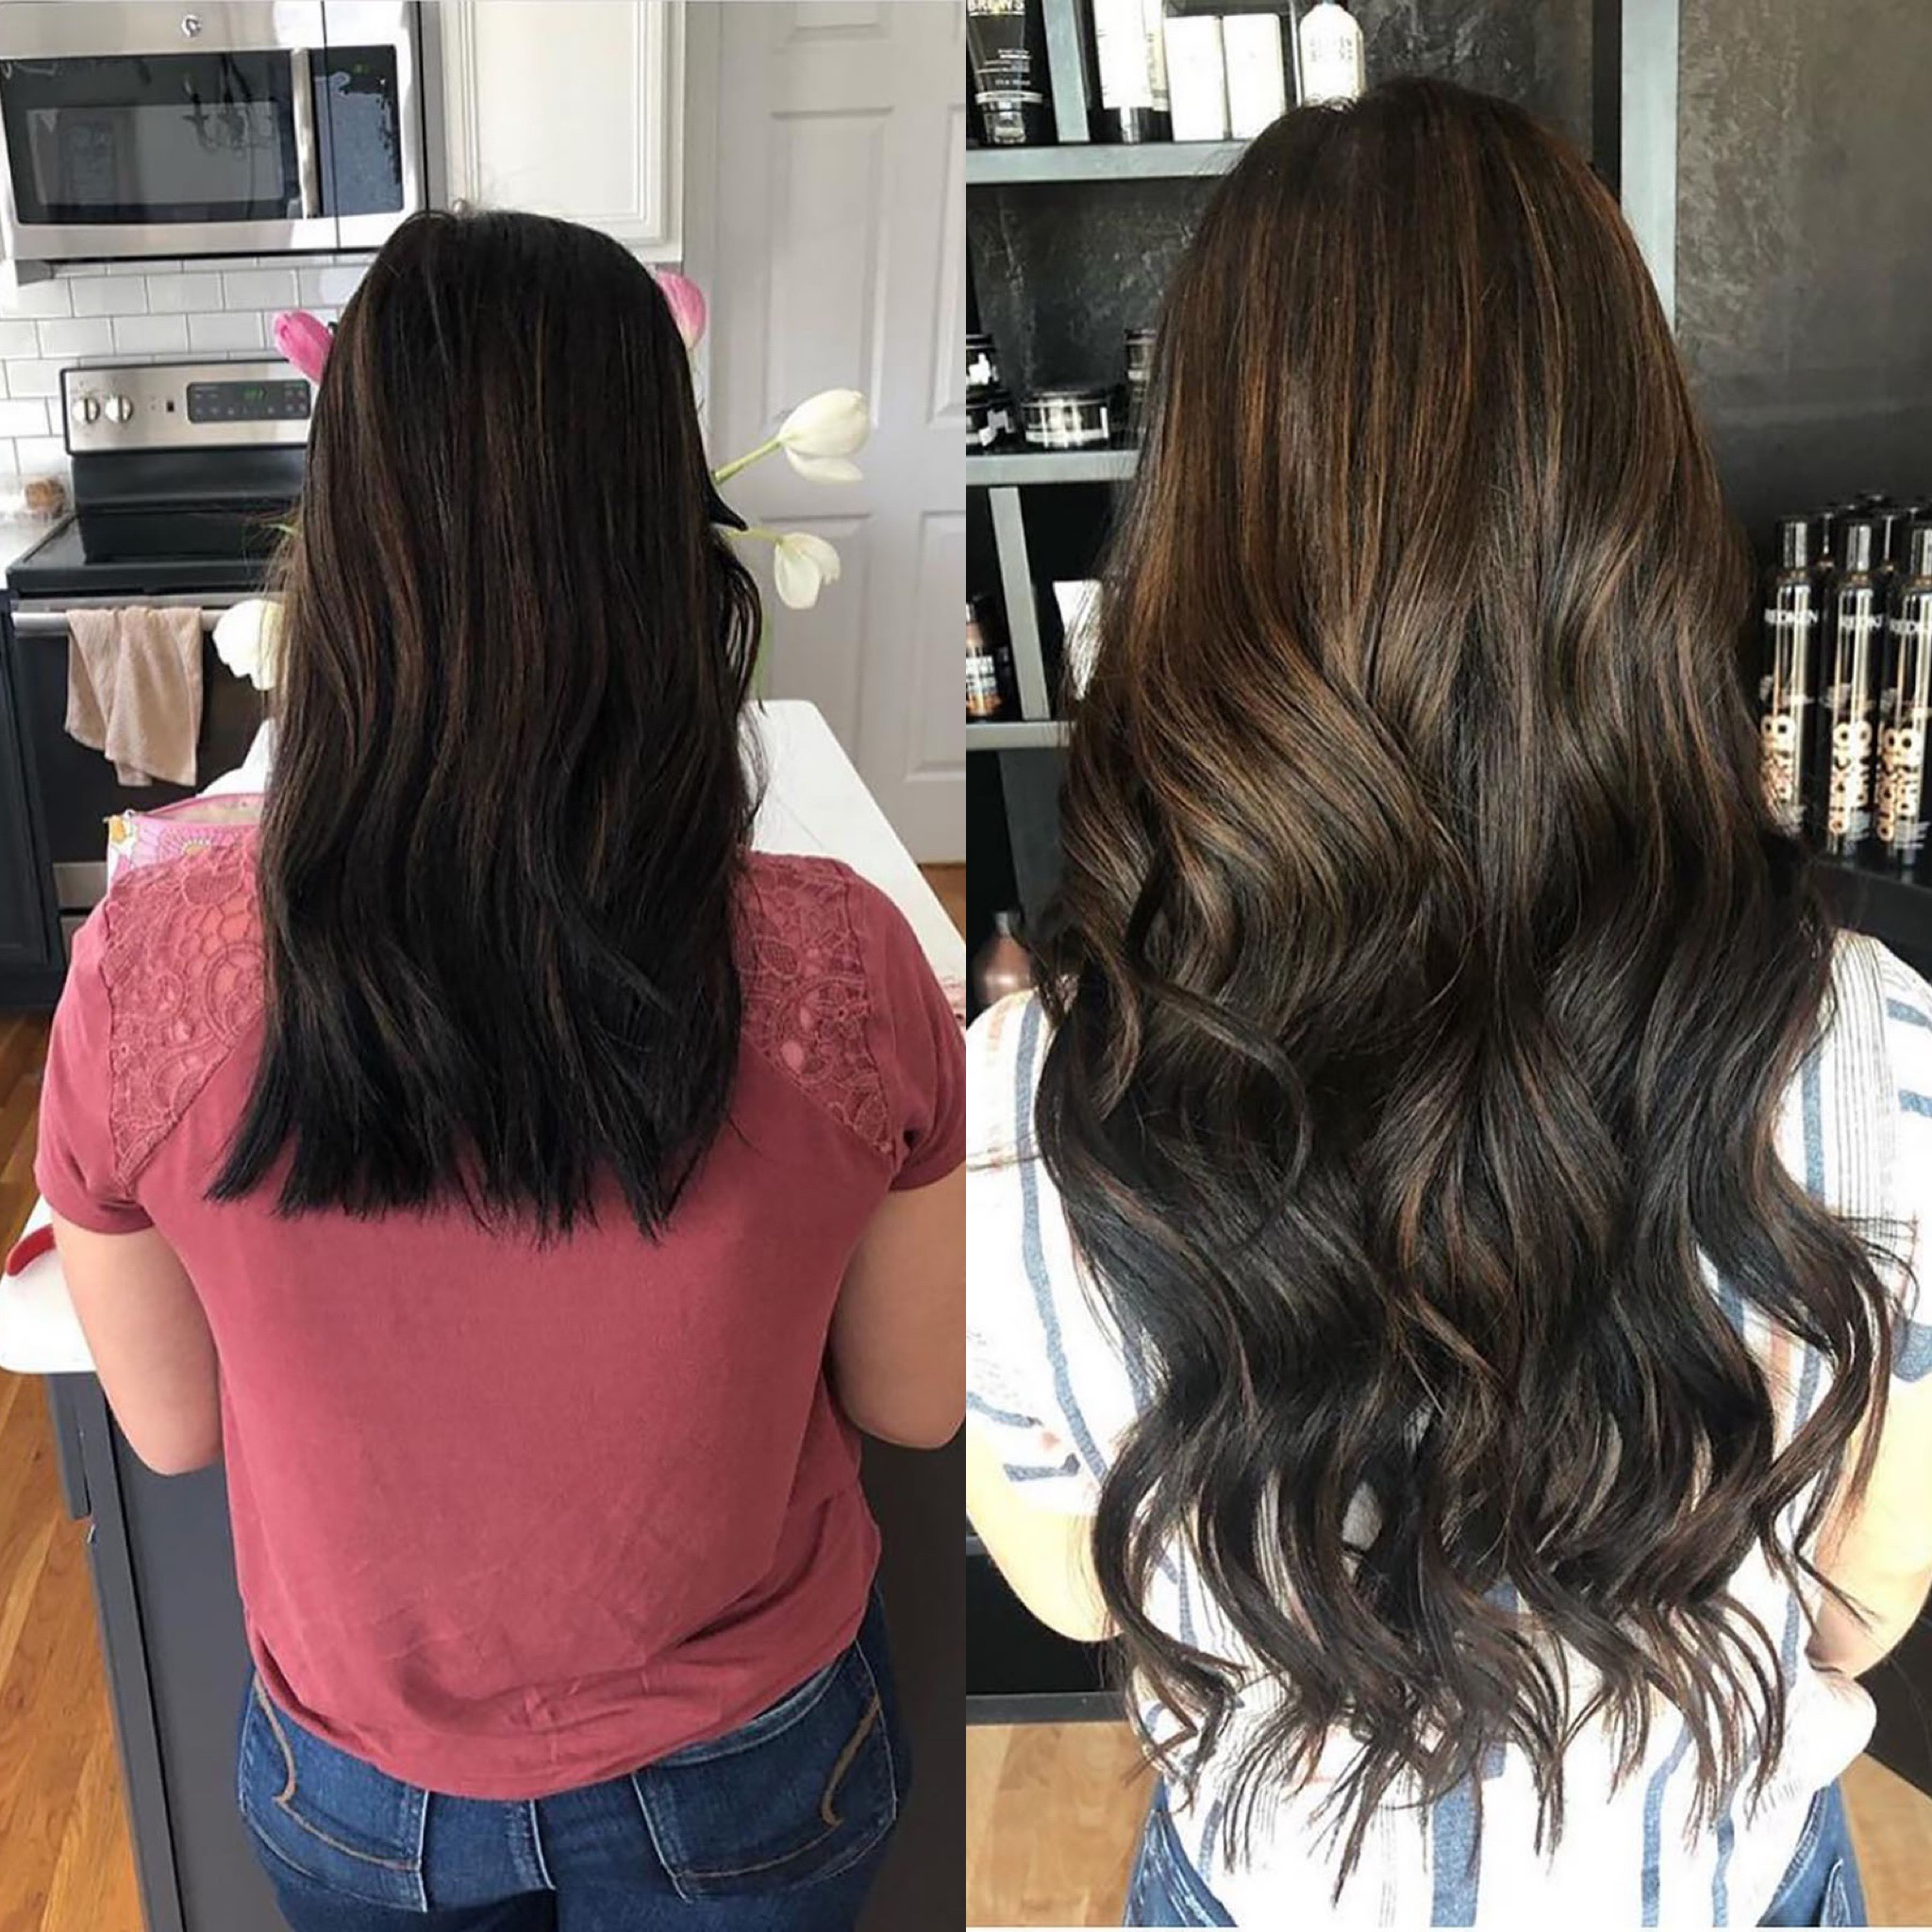 Extensions by Heidi Diggs